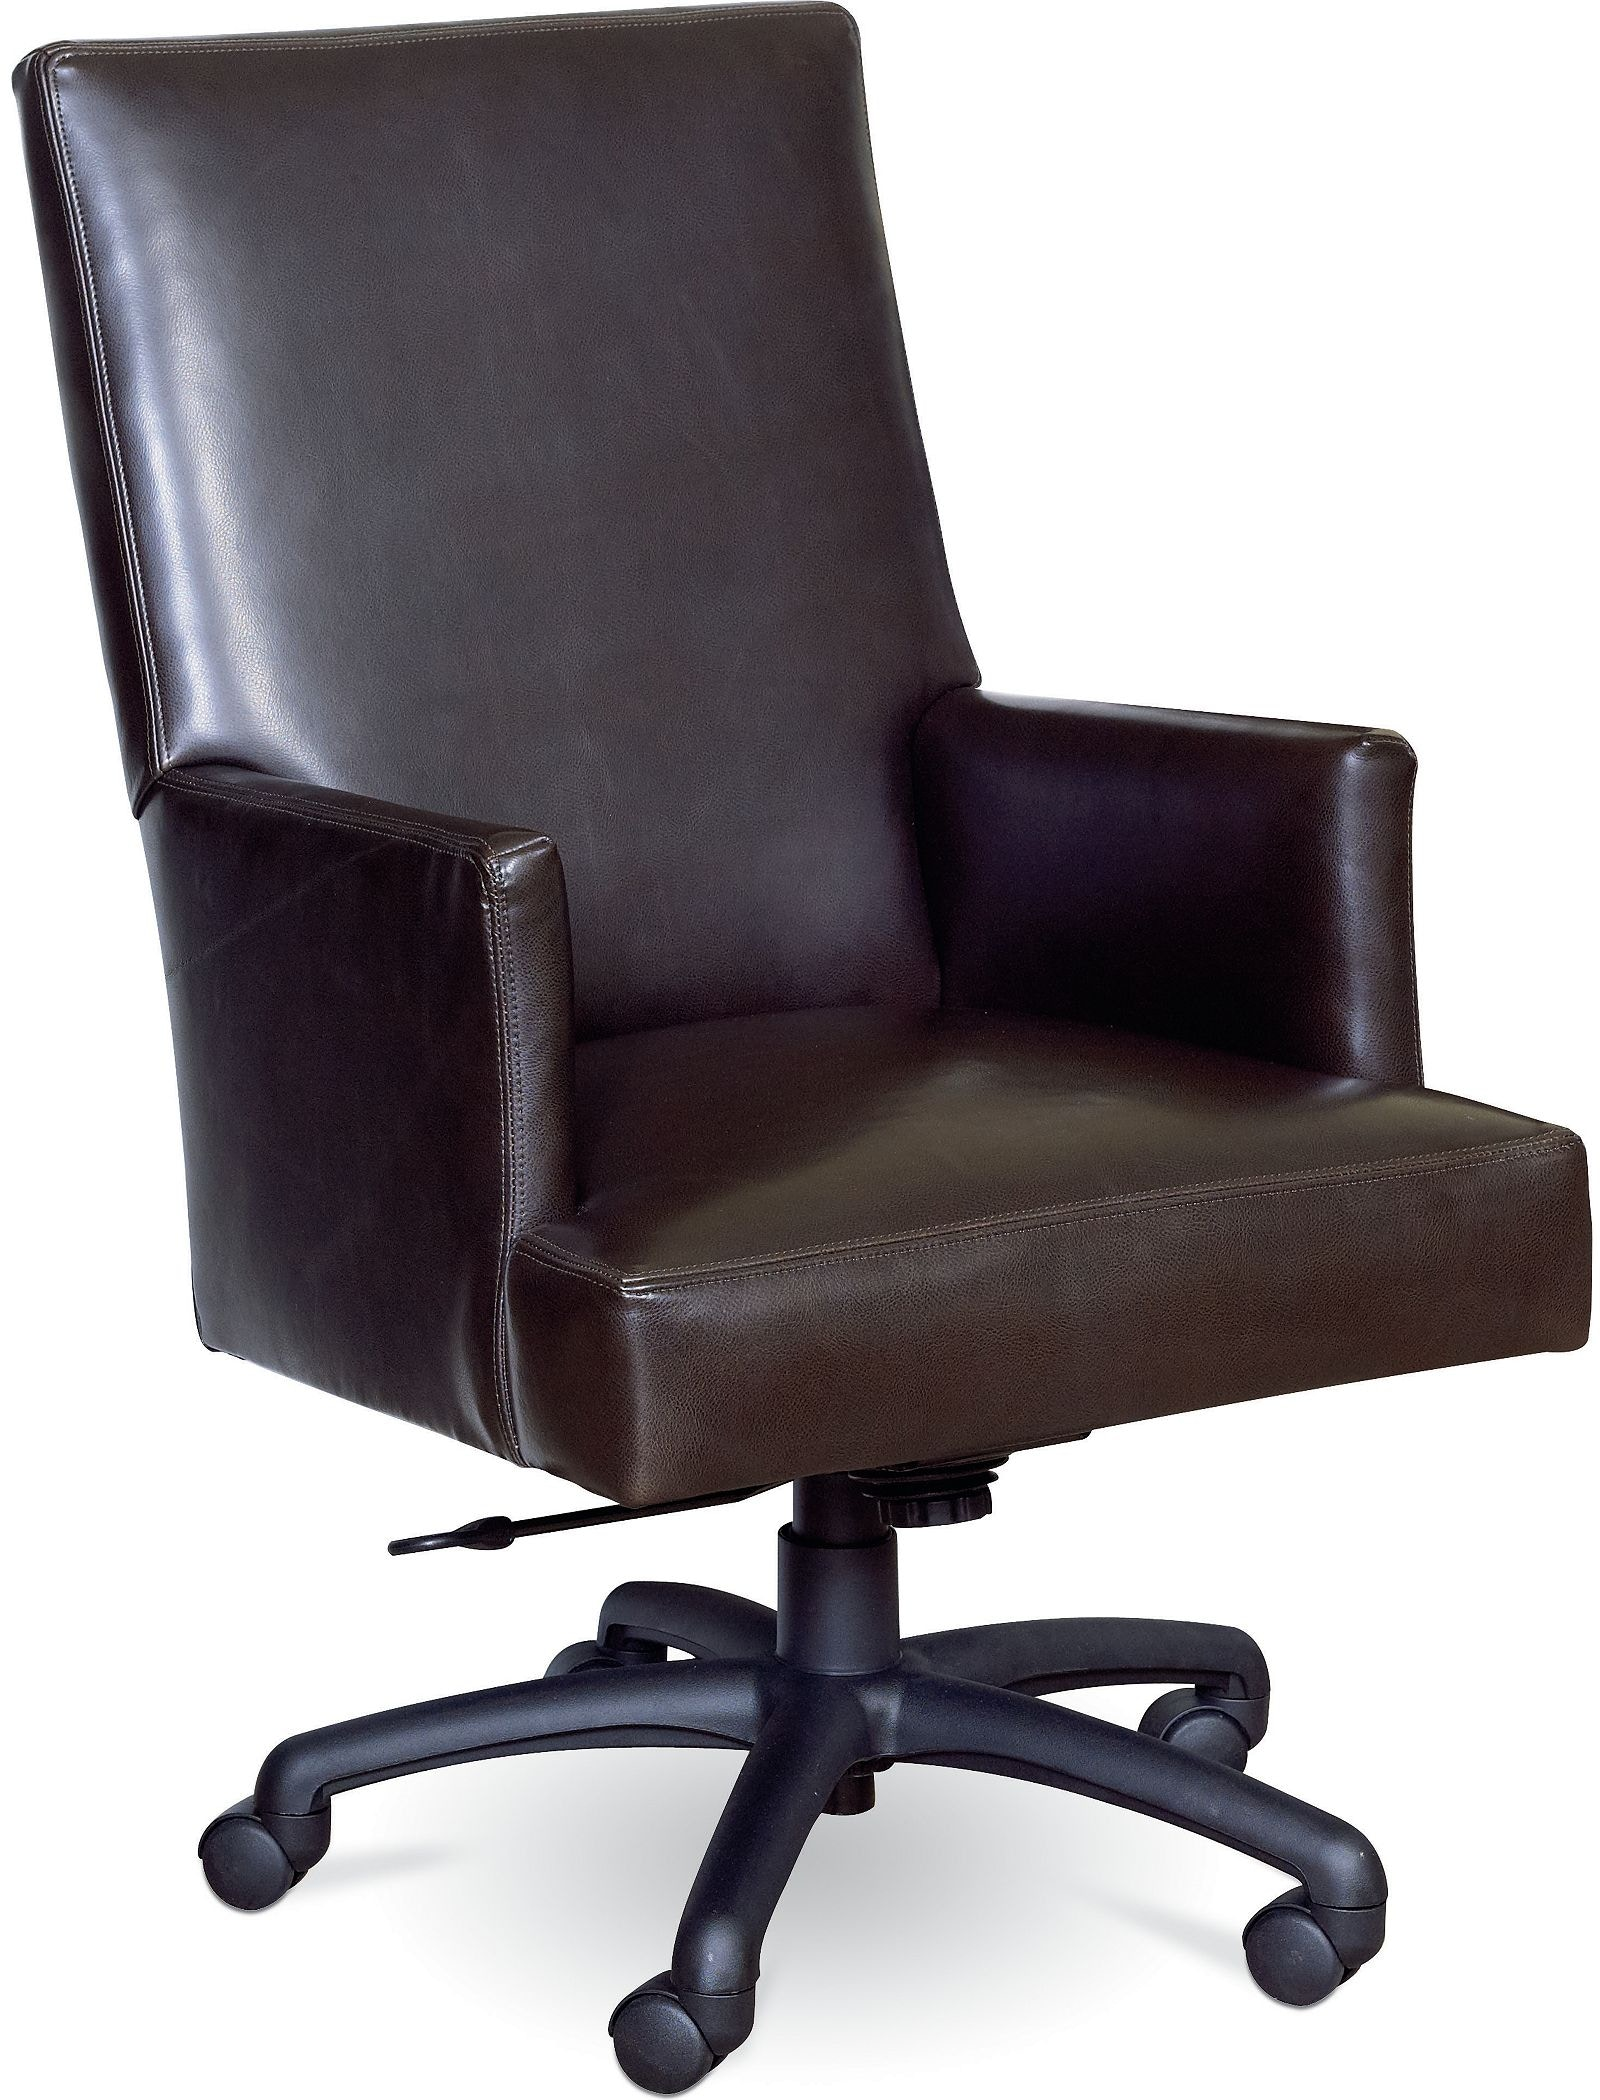 Thomasville Brown Leather Rolling Desk Chair Discount